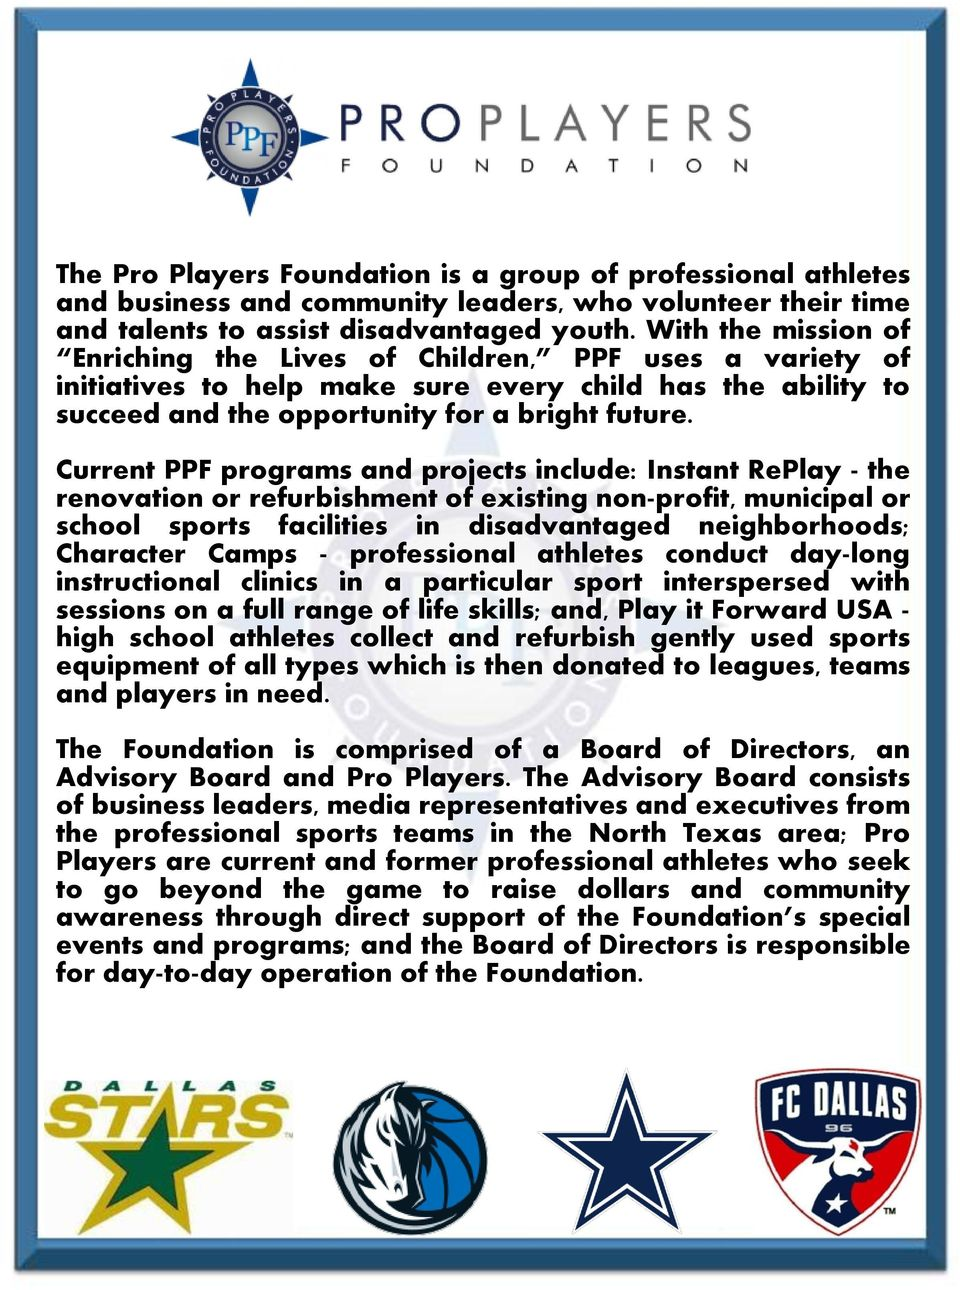 Current PPF programs and projects include: Instant RePlay - the renovation or refurbishment of existing non-profit, municipal or school sports facilities in disadvantaged neighborhoods; Character